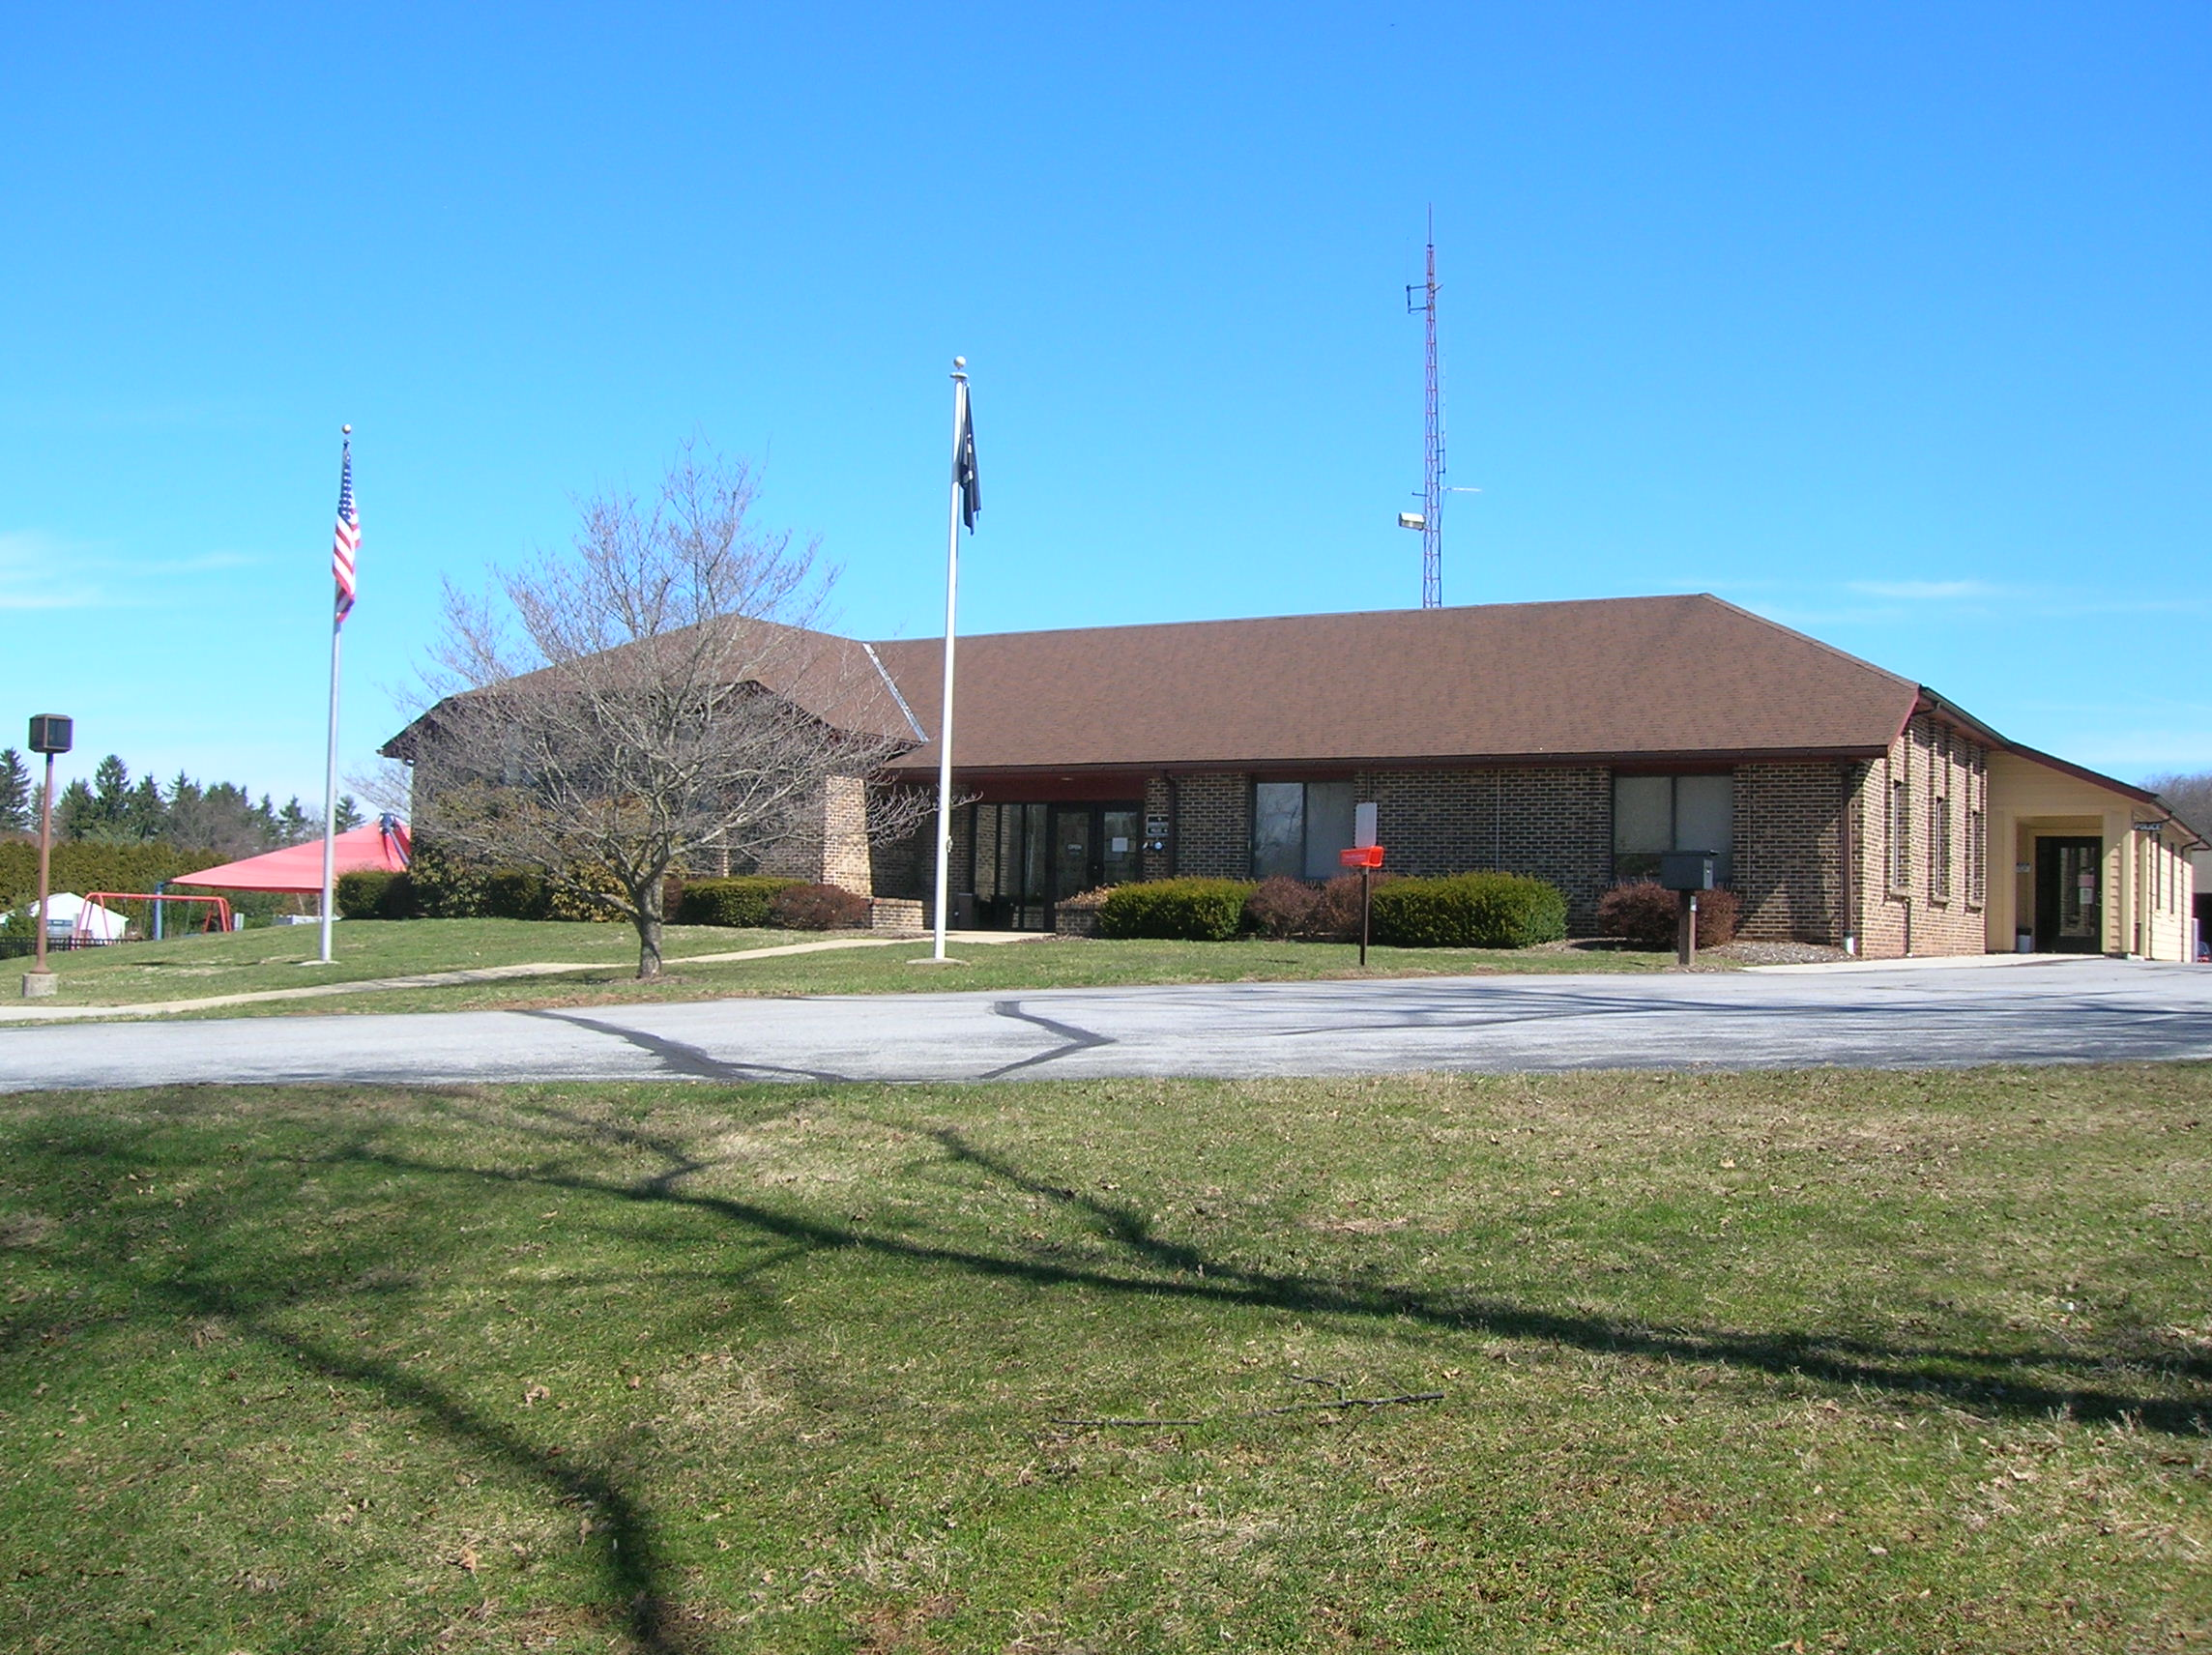 East Coventry Township Building